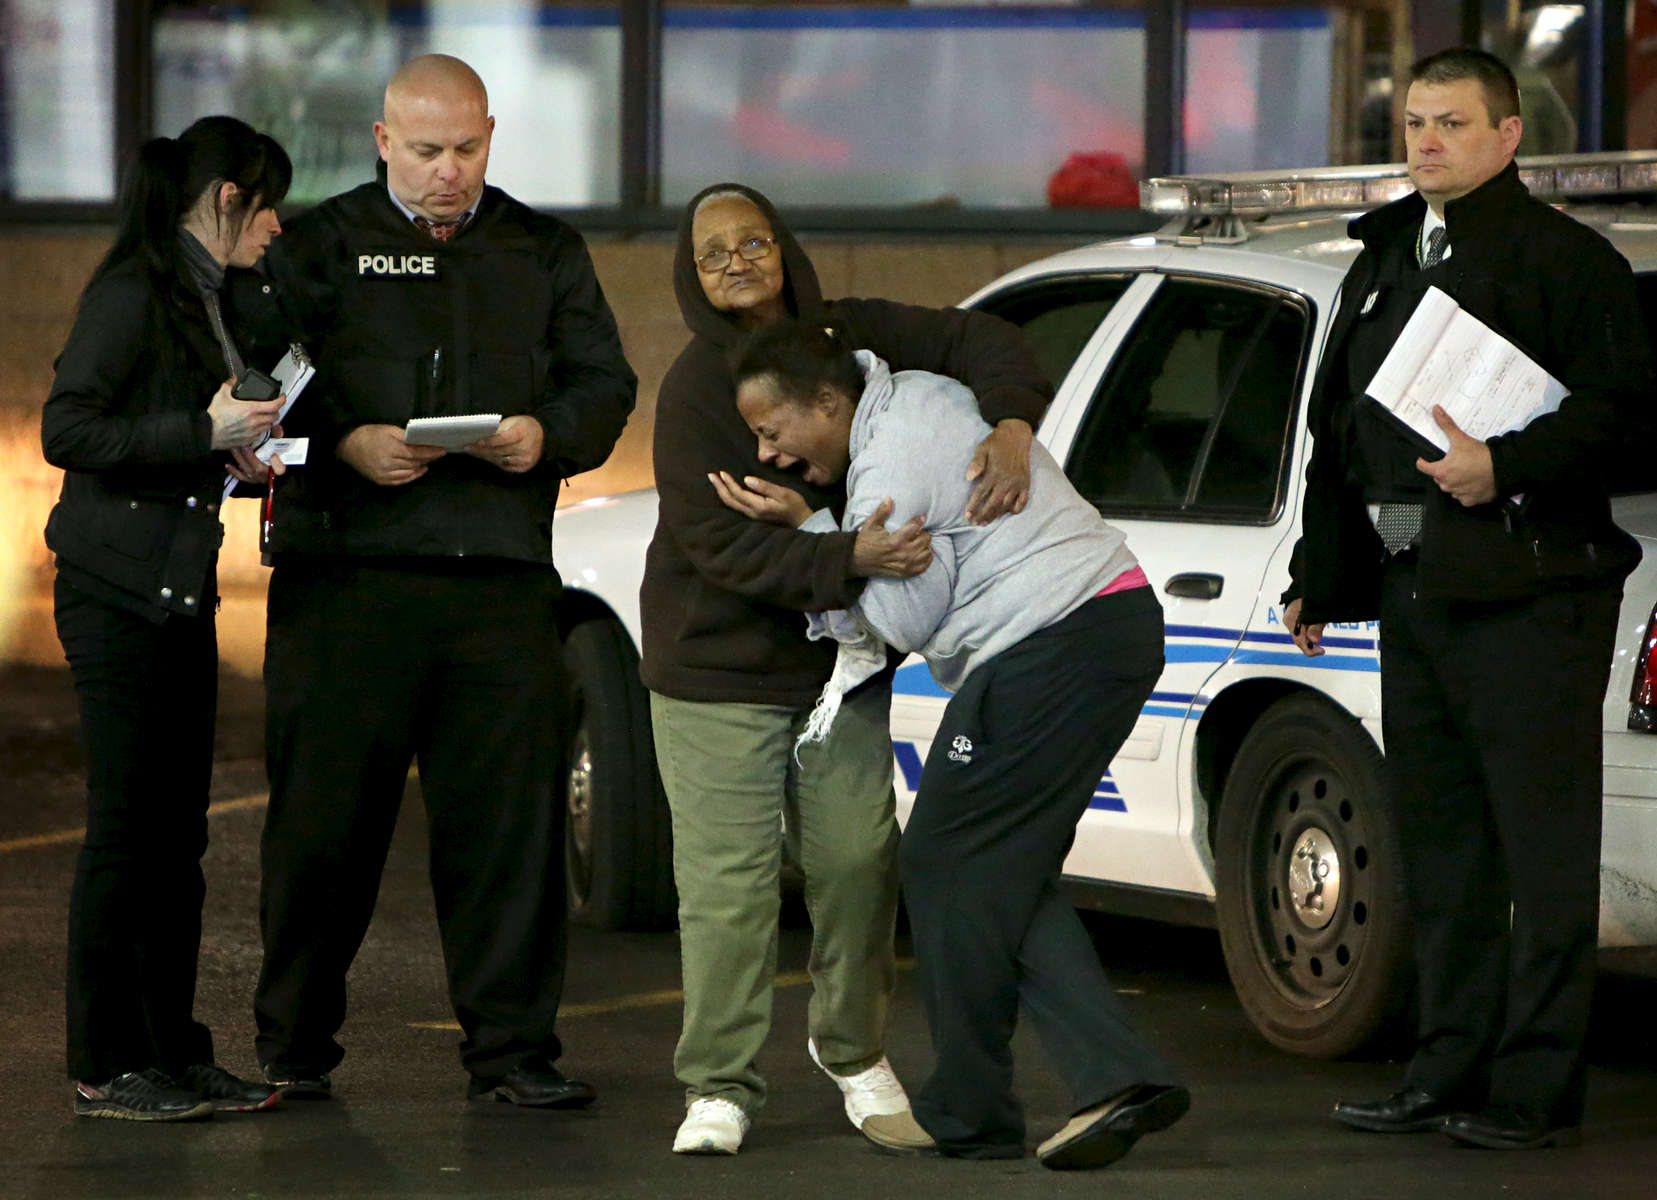 Toni Martin (center) cries out on Wednesday, Dec. 24, 2014 as she talks to police at the scene were her son Antonio Martin, 18, was fatally shot Tuesday Dec. 23, 2014 at a Mobil gas station on North Hanley Road in Berkeley. Photo By David Carson, dcarson@post-dispatch.com